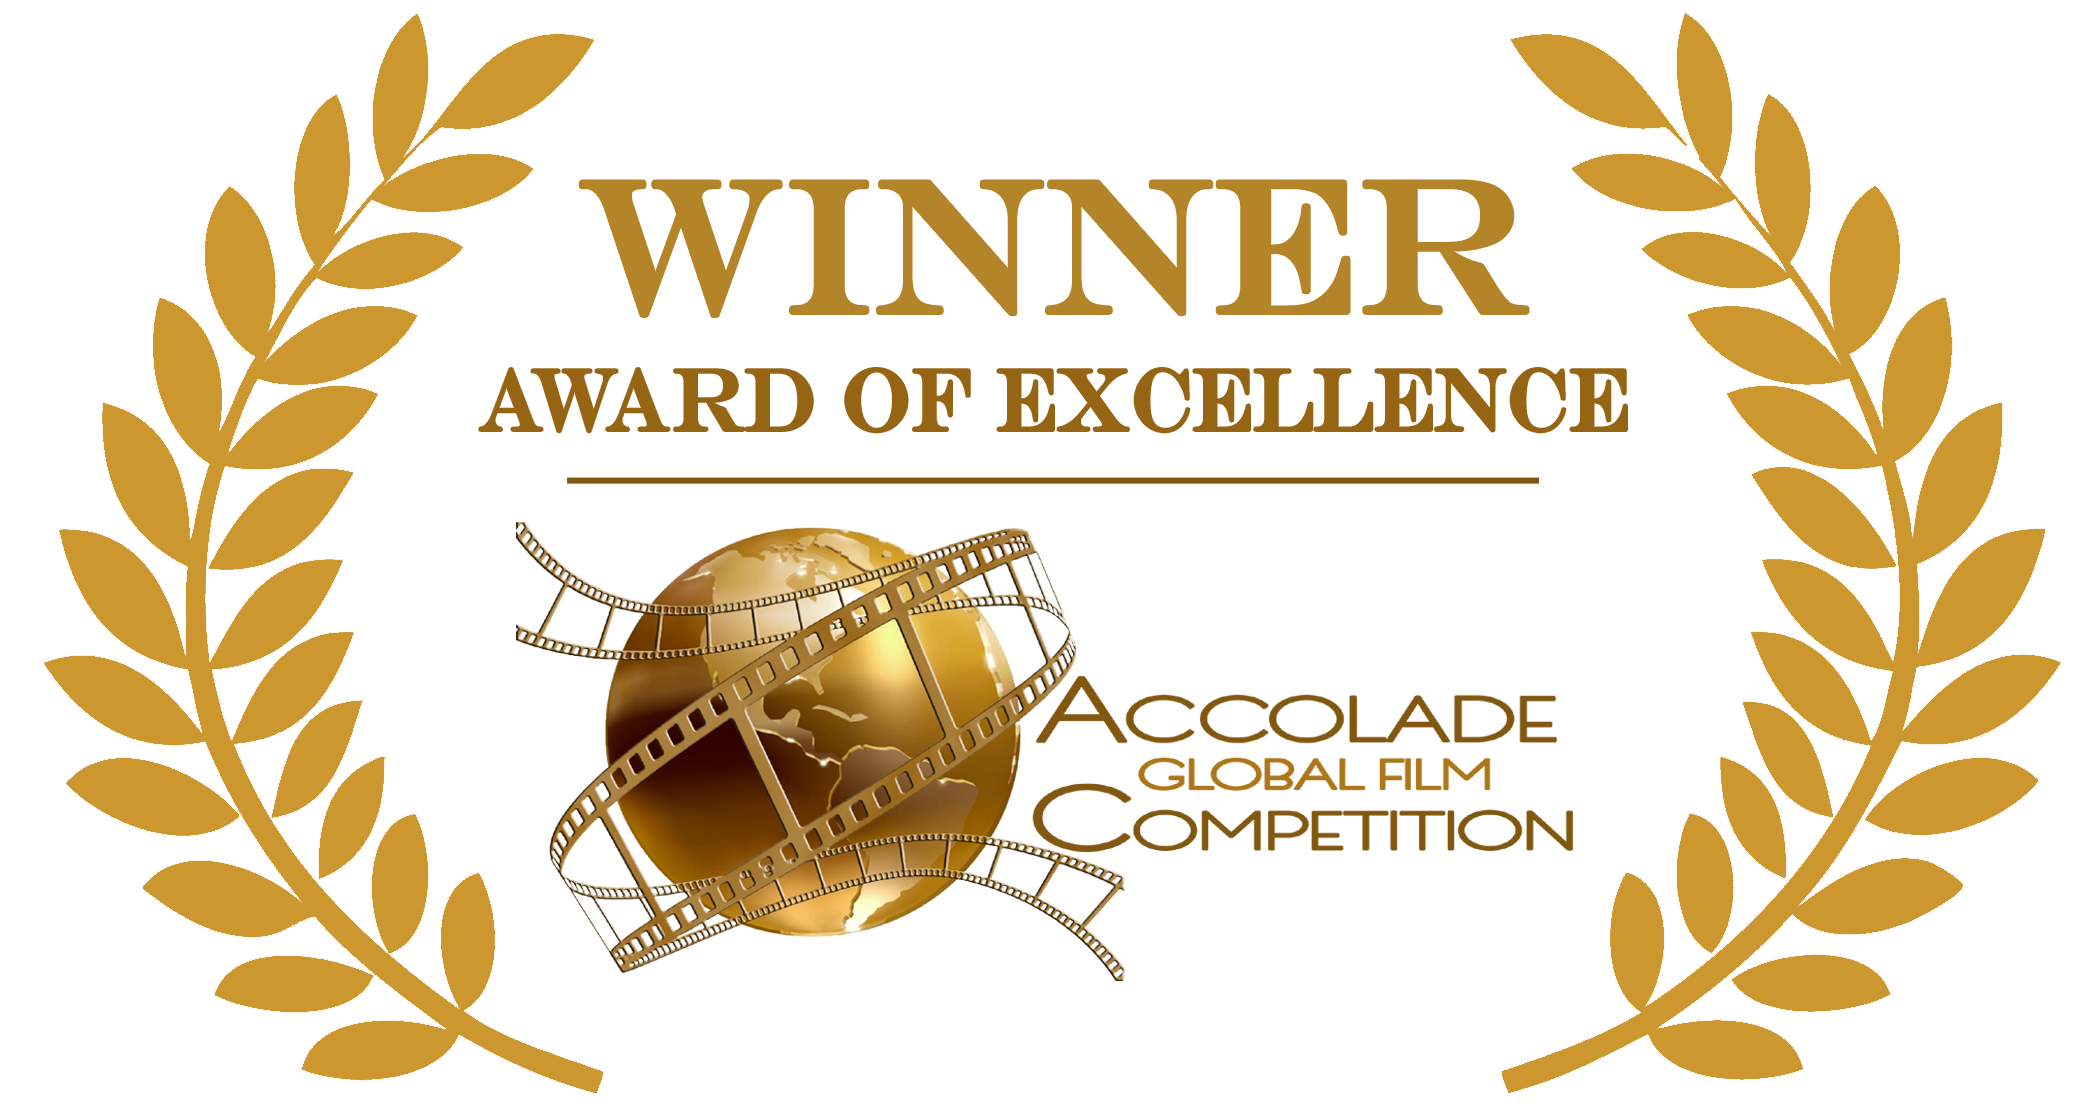 Accolade-Excellence-logo-Gold - Gold Award PNG